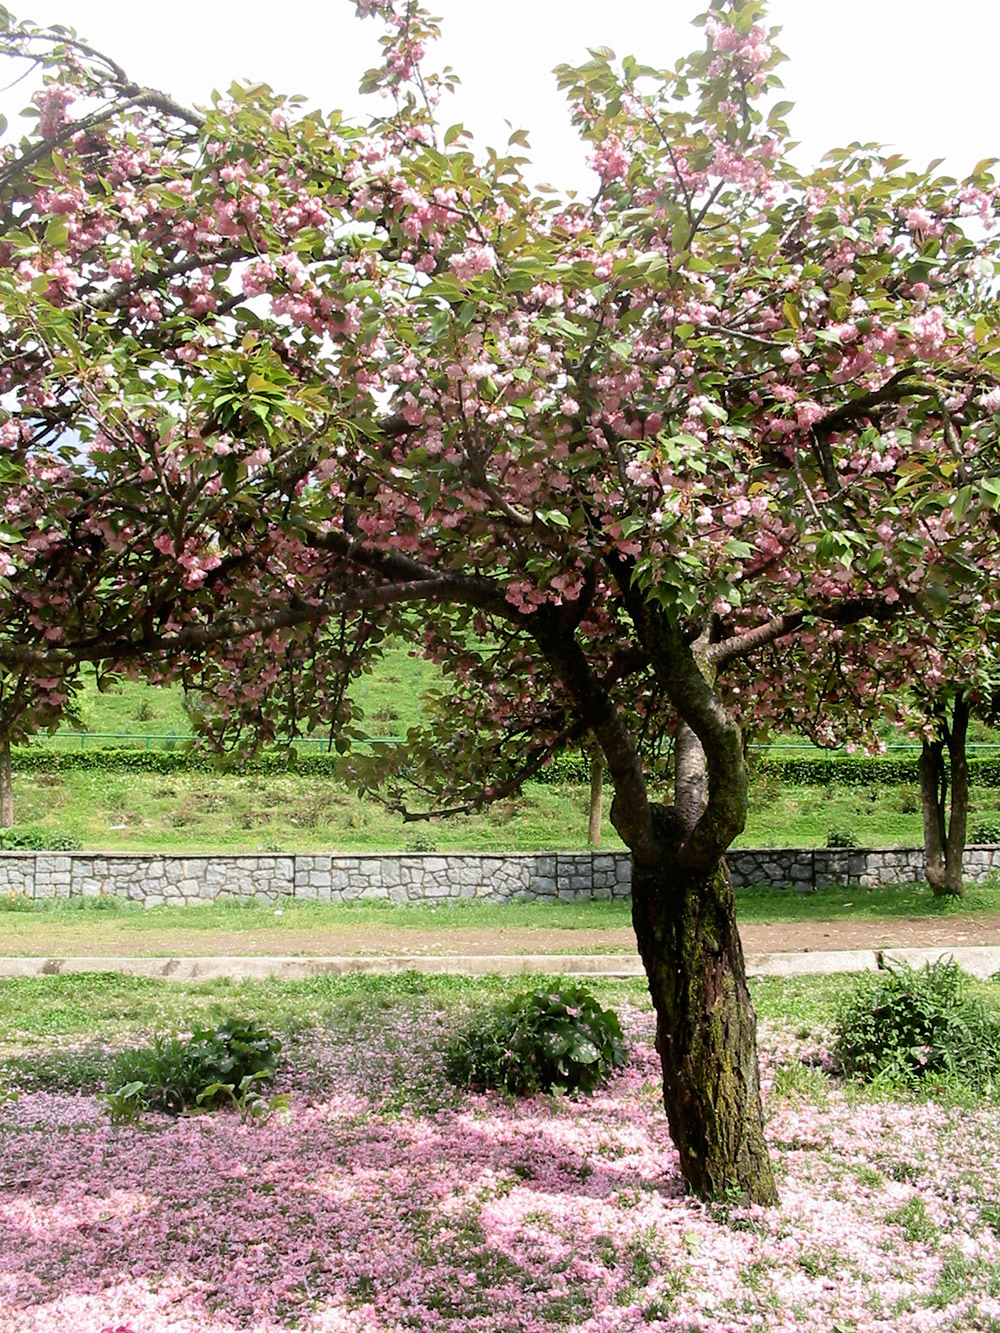 Cherry Blossom trees at Shalimar. Image credit: Anuradha Chaturvedi